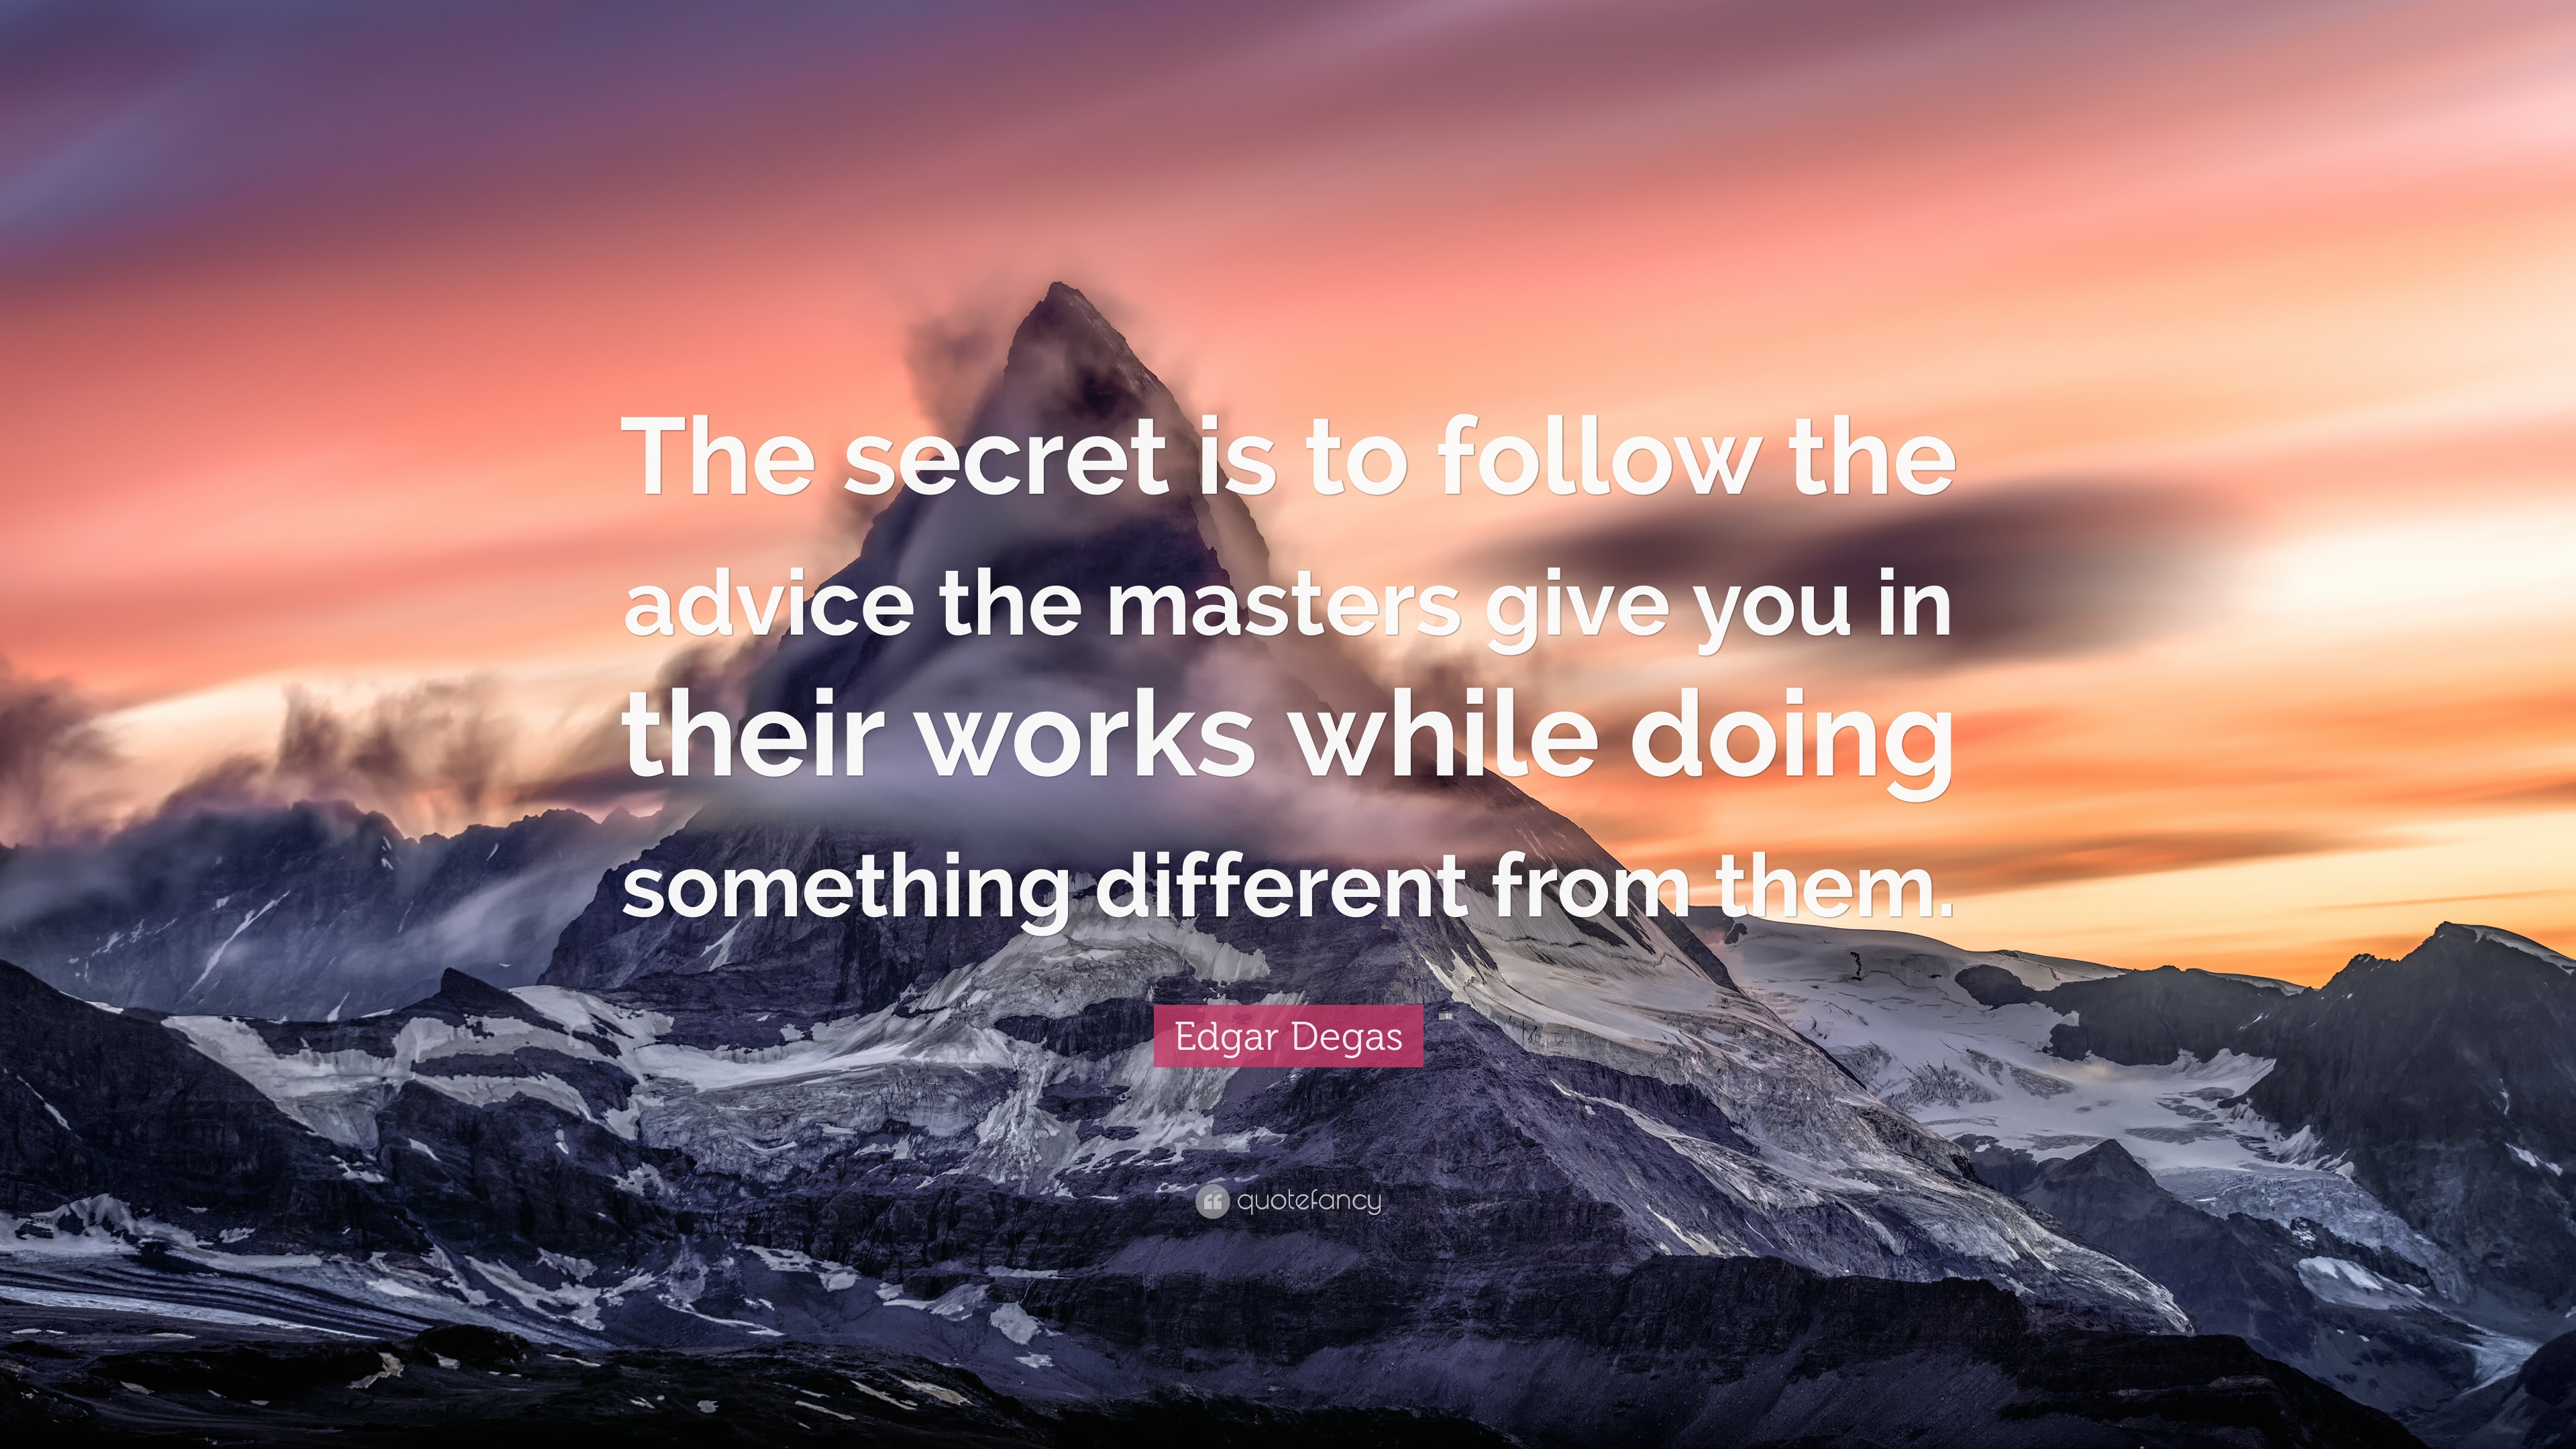 Edgar Degas Quote: U201cThe Secret Is To Follow The Advice The Masters Give You